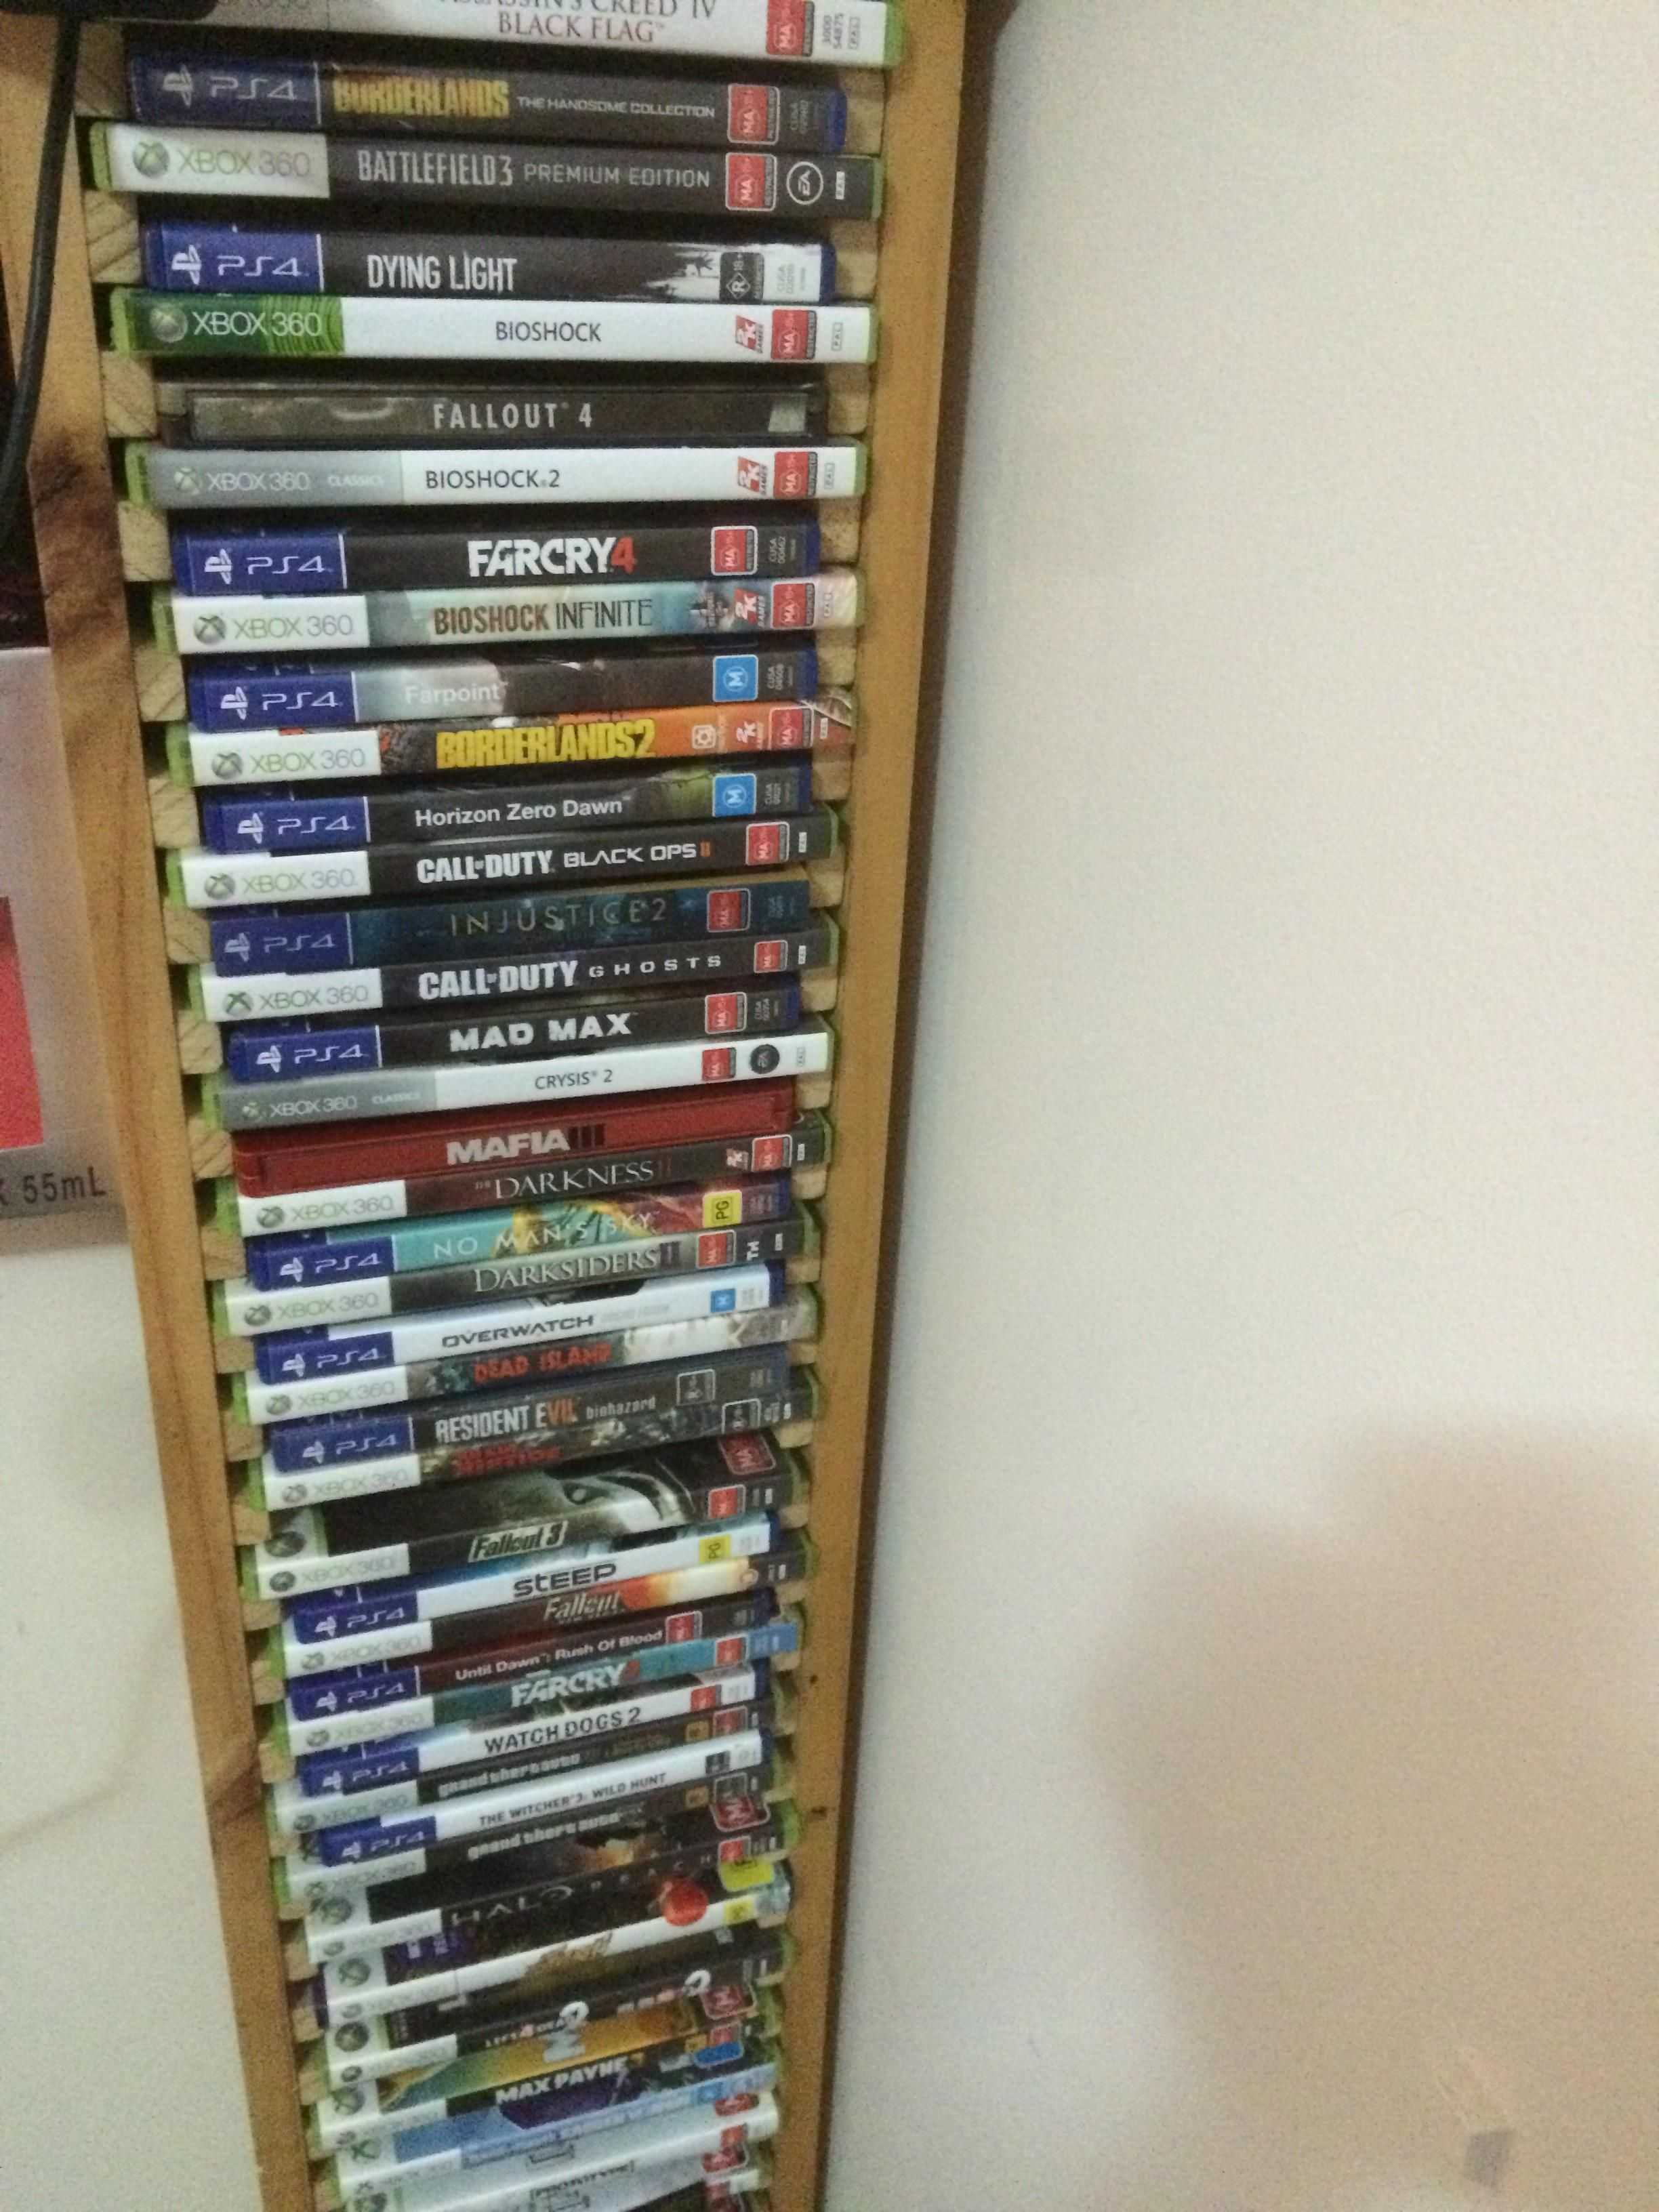 Thought You Guys Might Like My Game Rack Made For 360 Games That Happened To Perfectly Fit Ps4 Games When I Made The Switch Ps4 Games I Am Game Xbox 360 Games